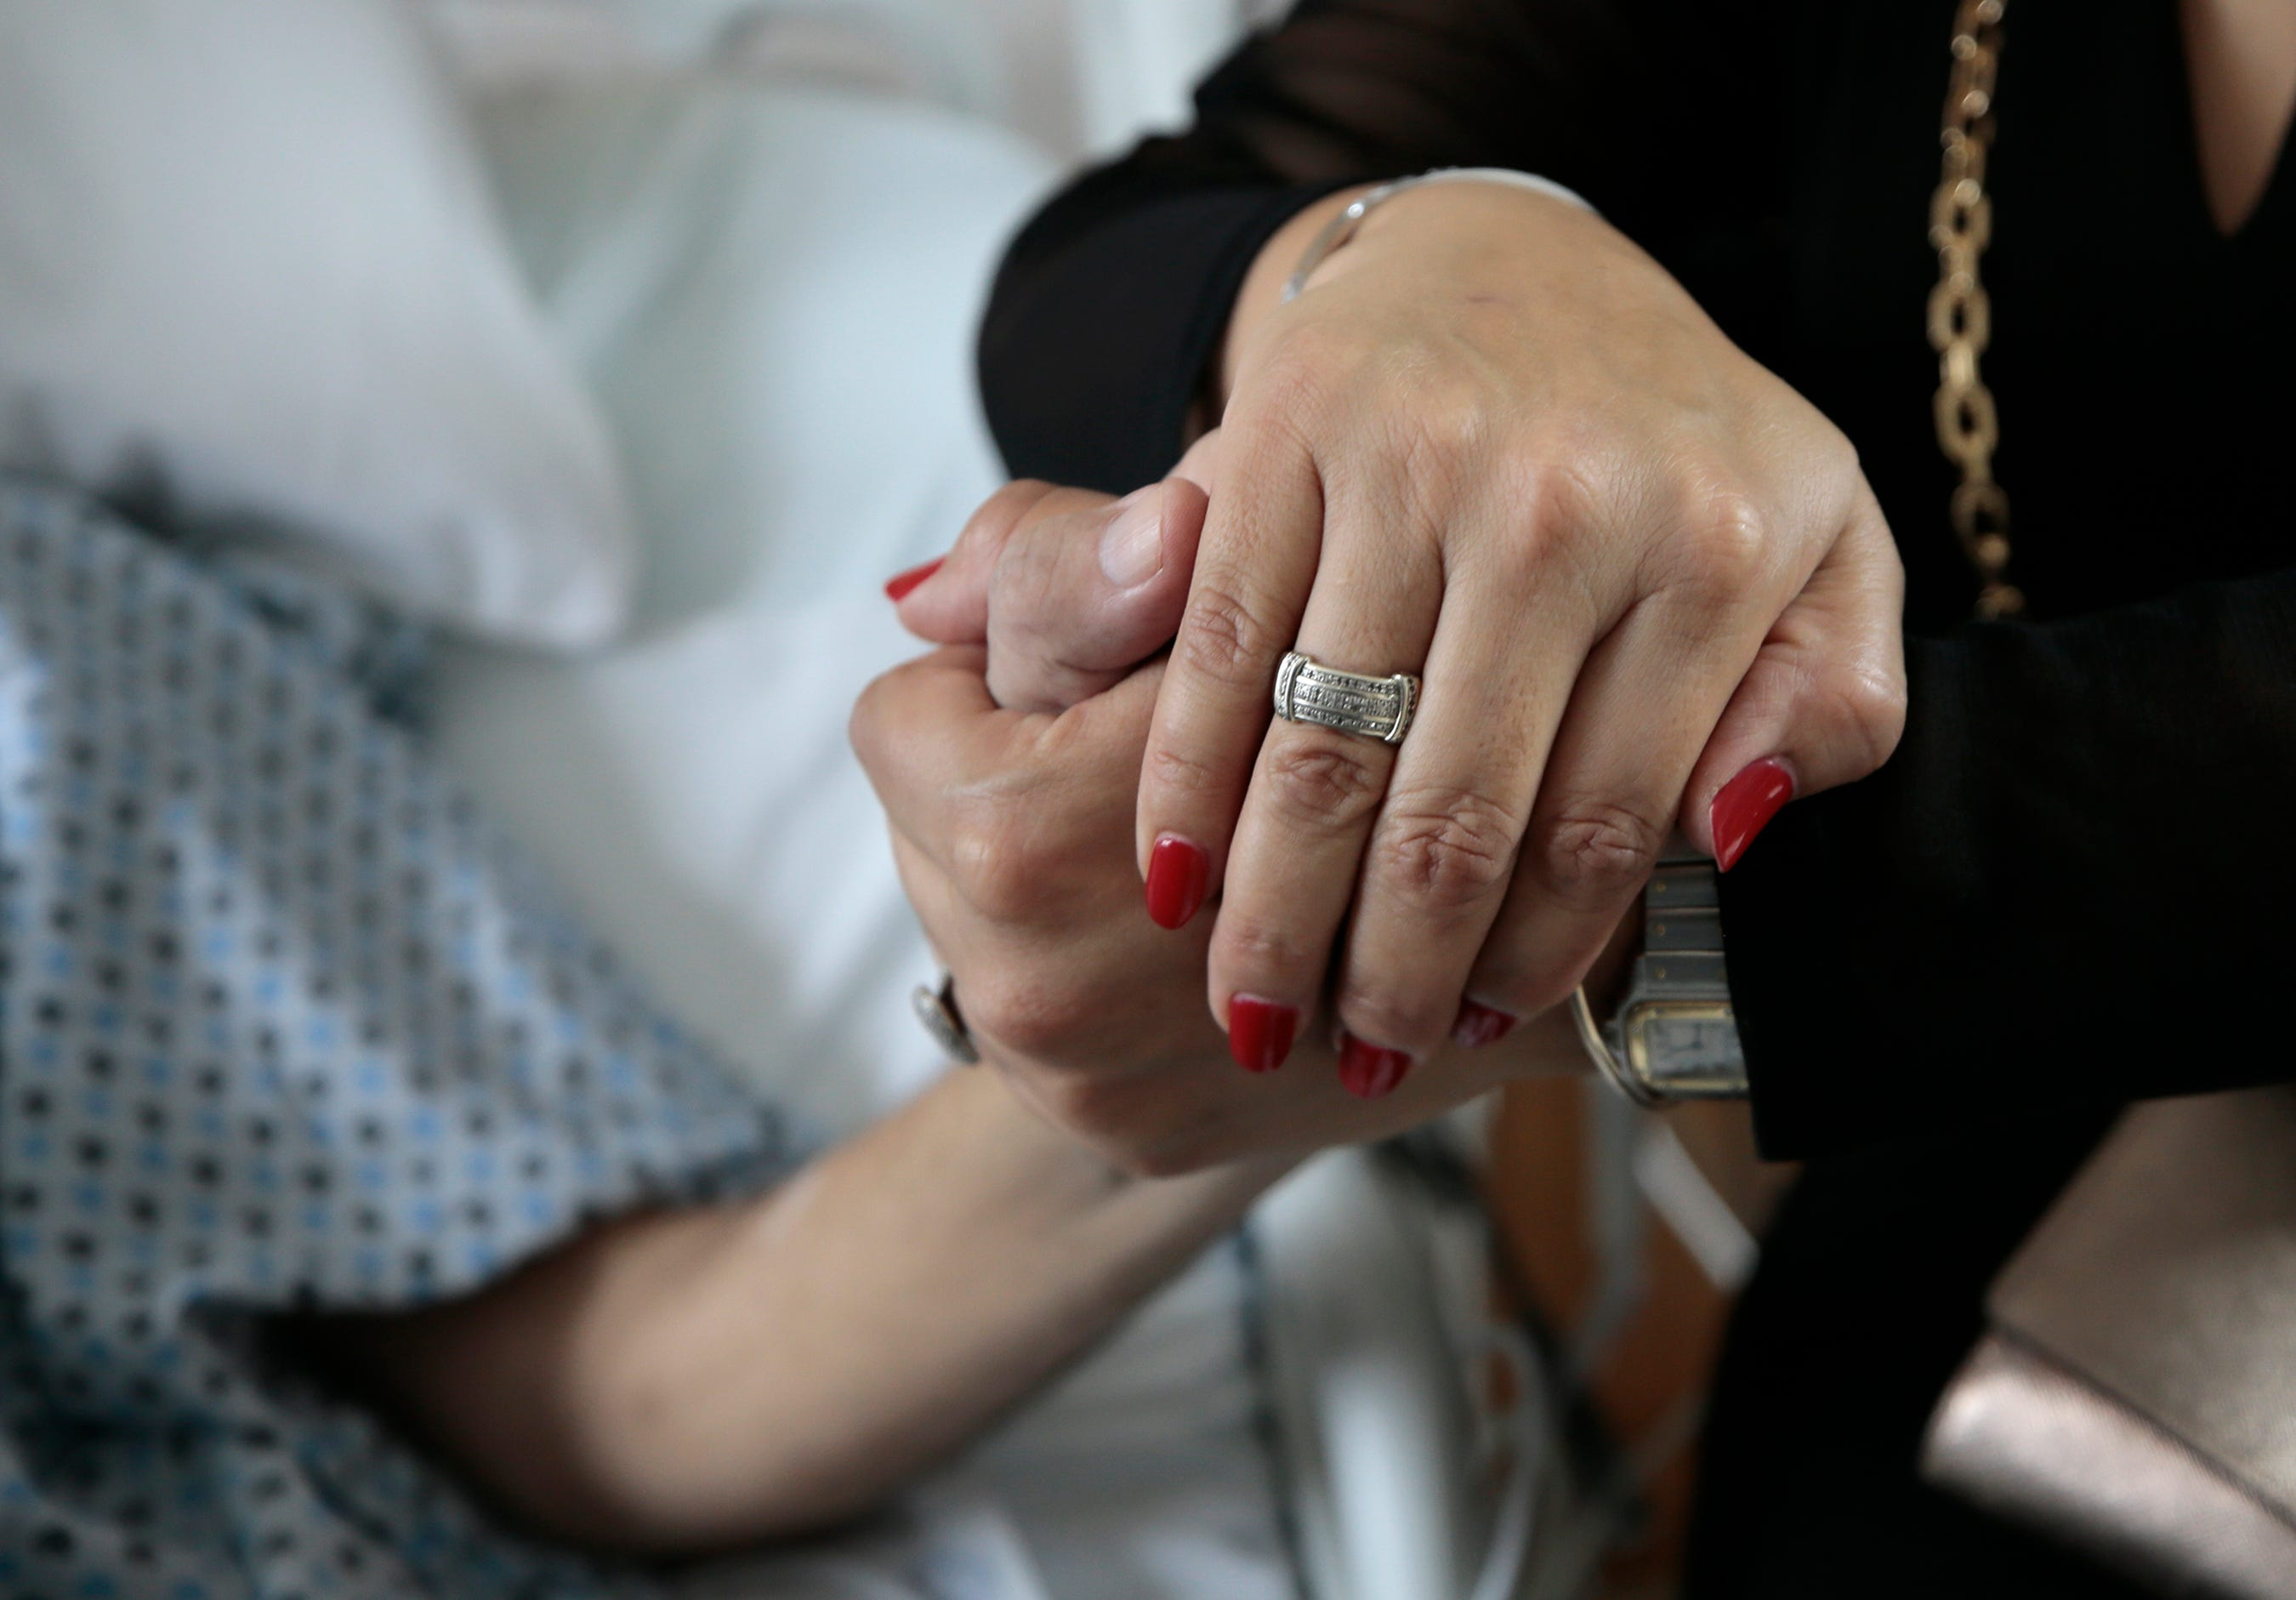 Cristina De Alba holds hands with her brother Mario de Alba, who was shot in the back at the Walmart in El Paso on August, 3, 2019. He is the last of the more than two dozen wounded to be continuously hospitalized after the attack that killed 23 people.